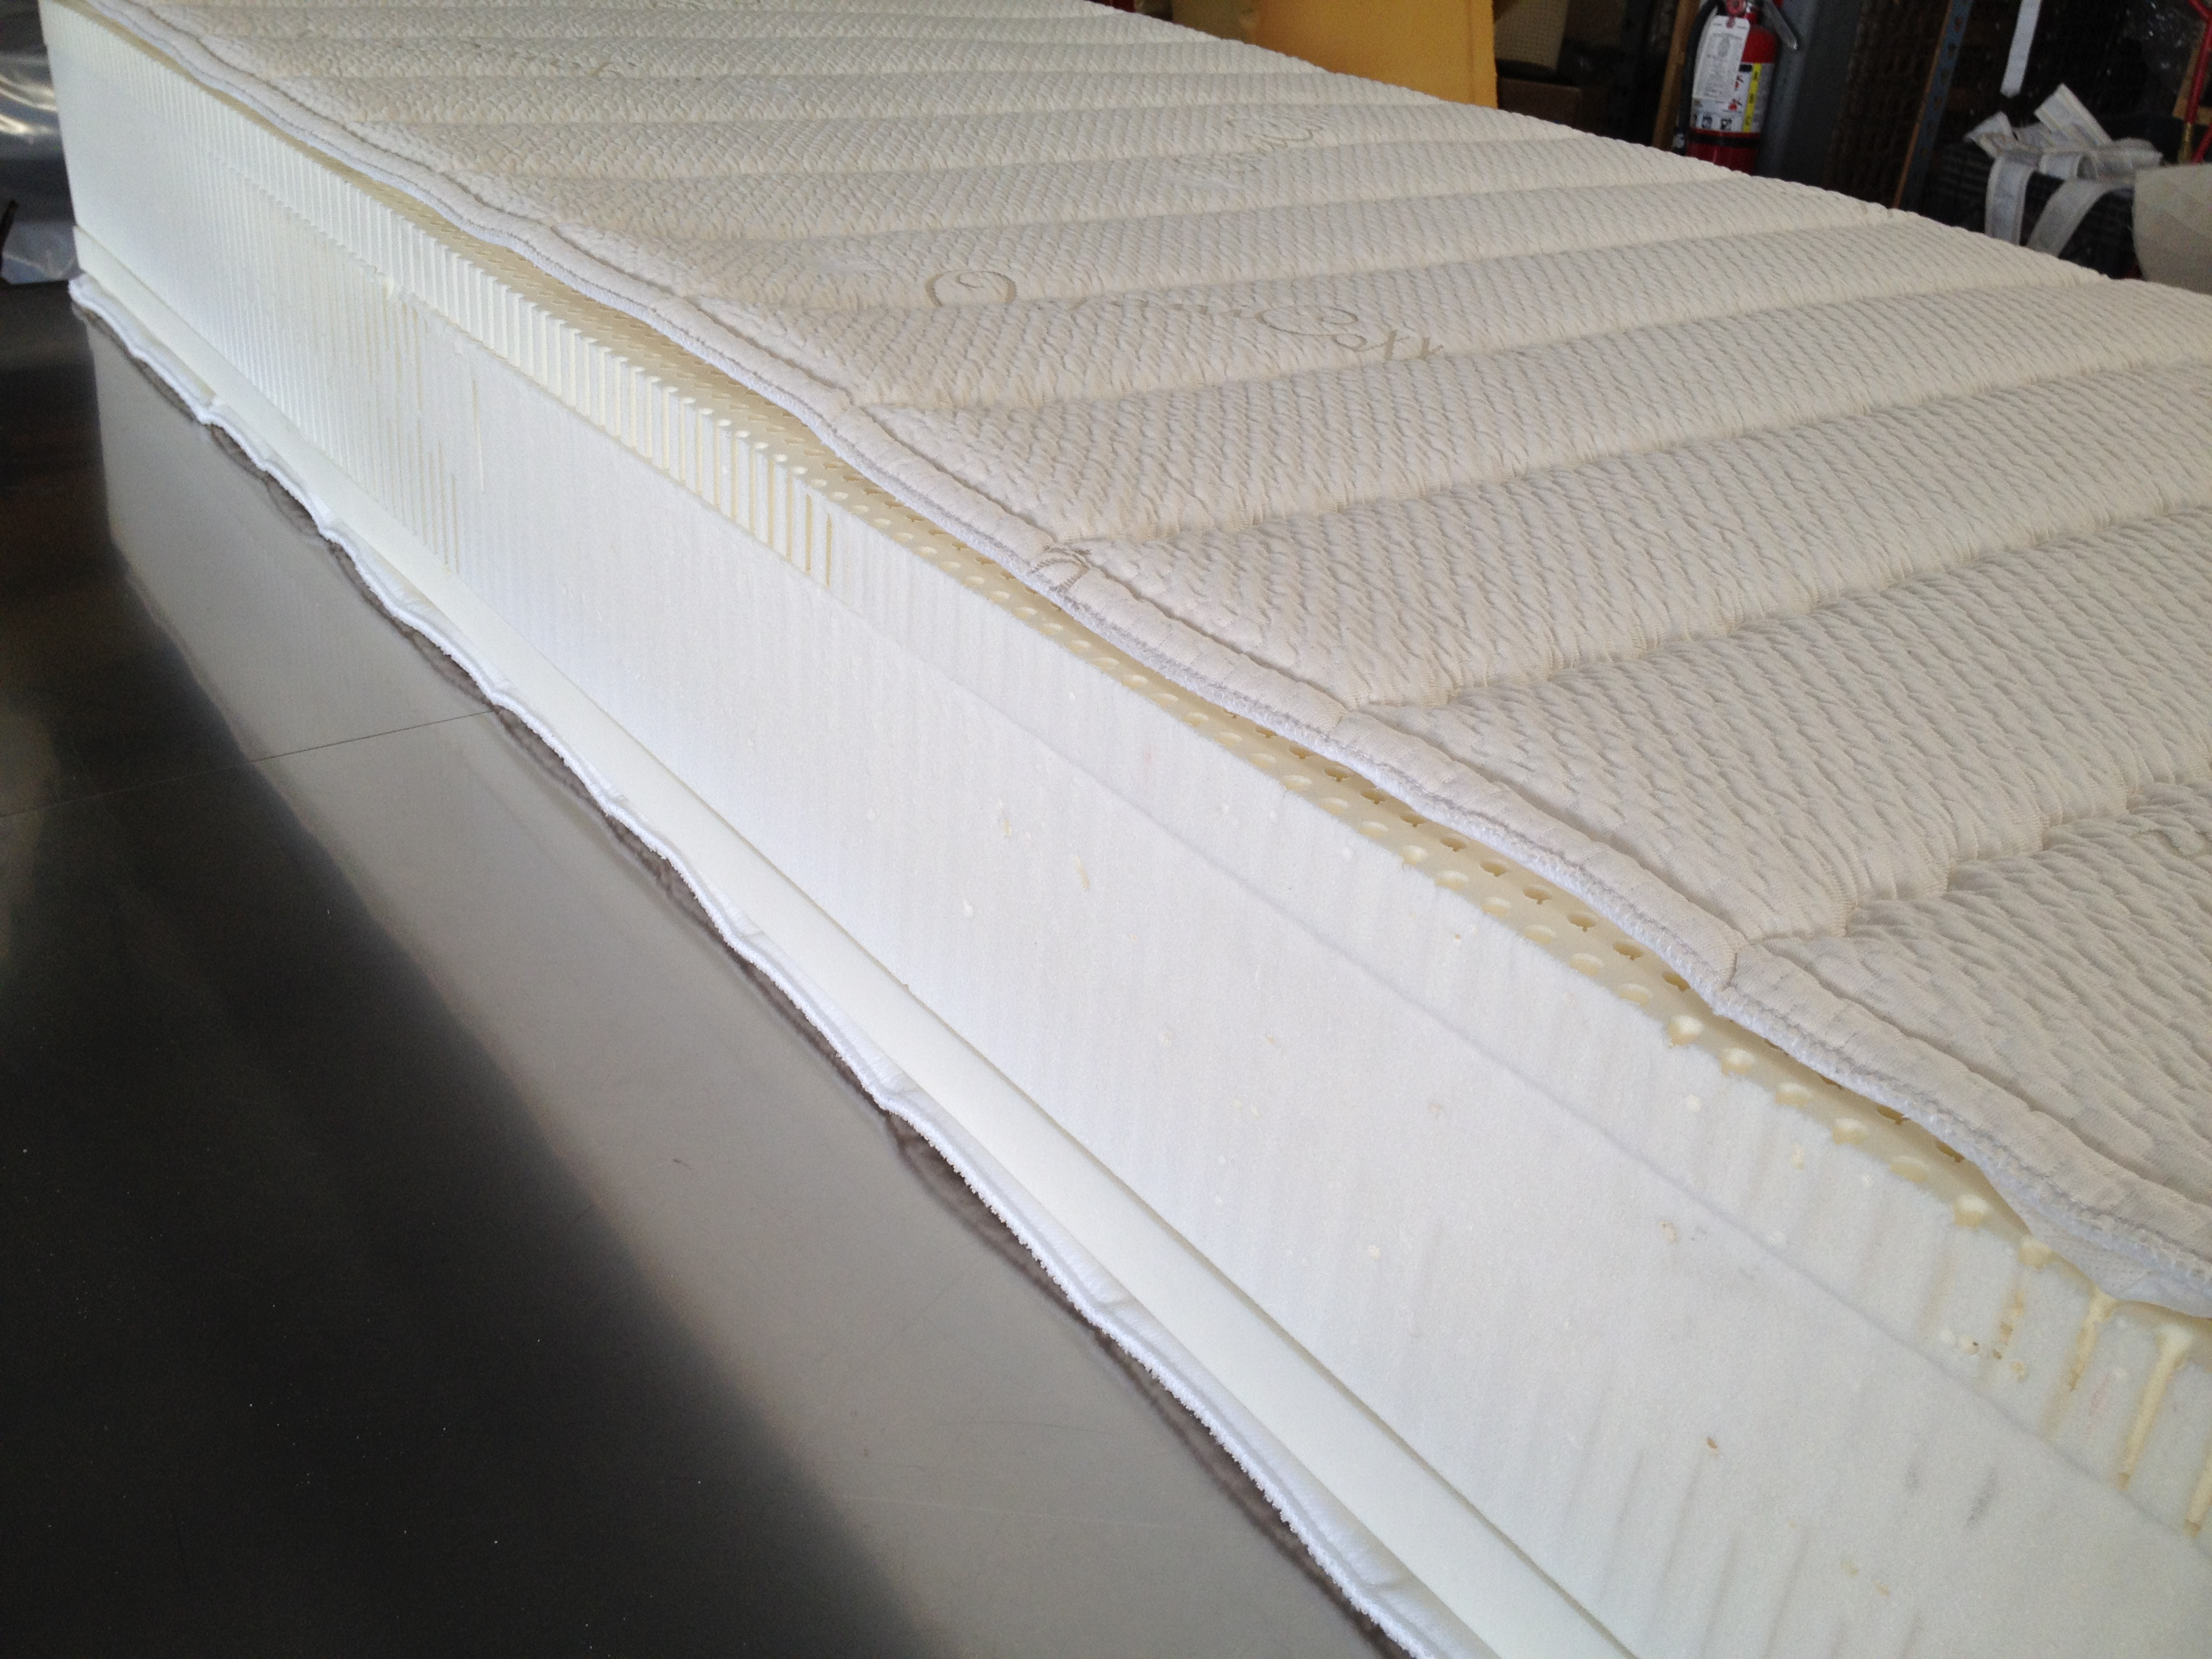 order direct from the latexpedic latex mattress factory and save up to 50 and more call the latexpedic latex mattress factory toll free - Latex Bed